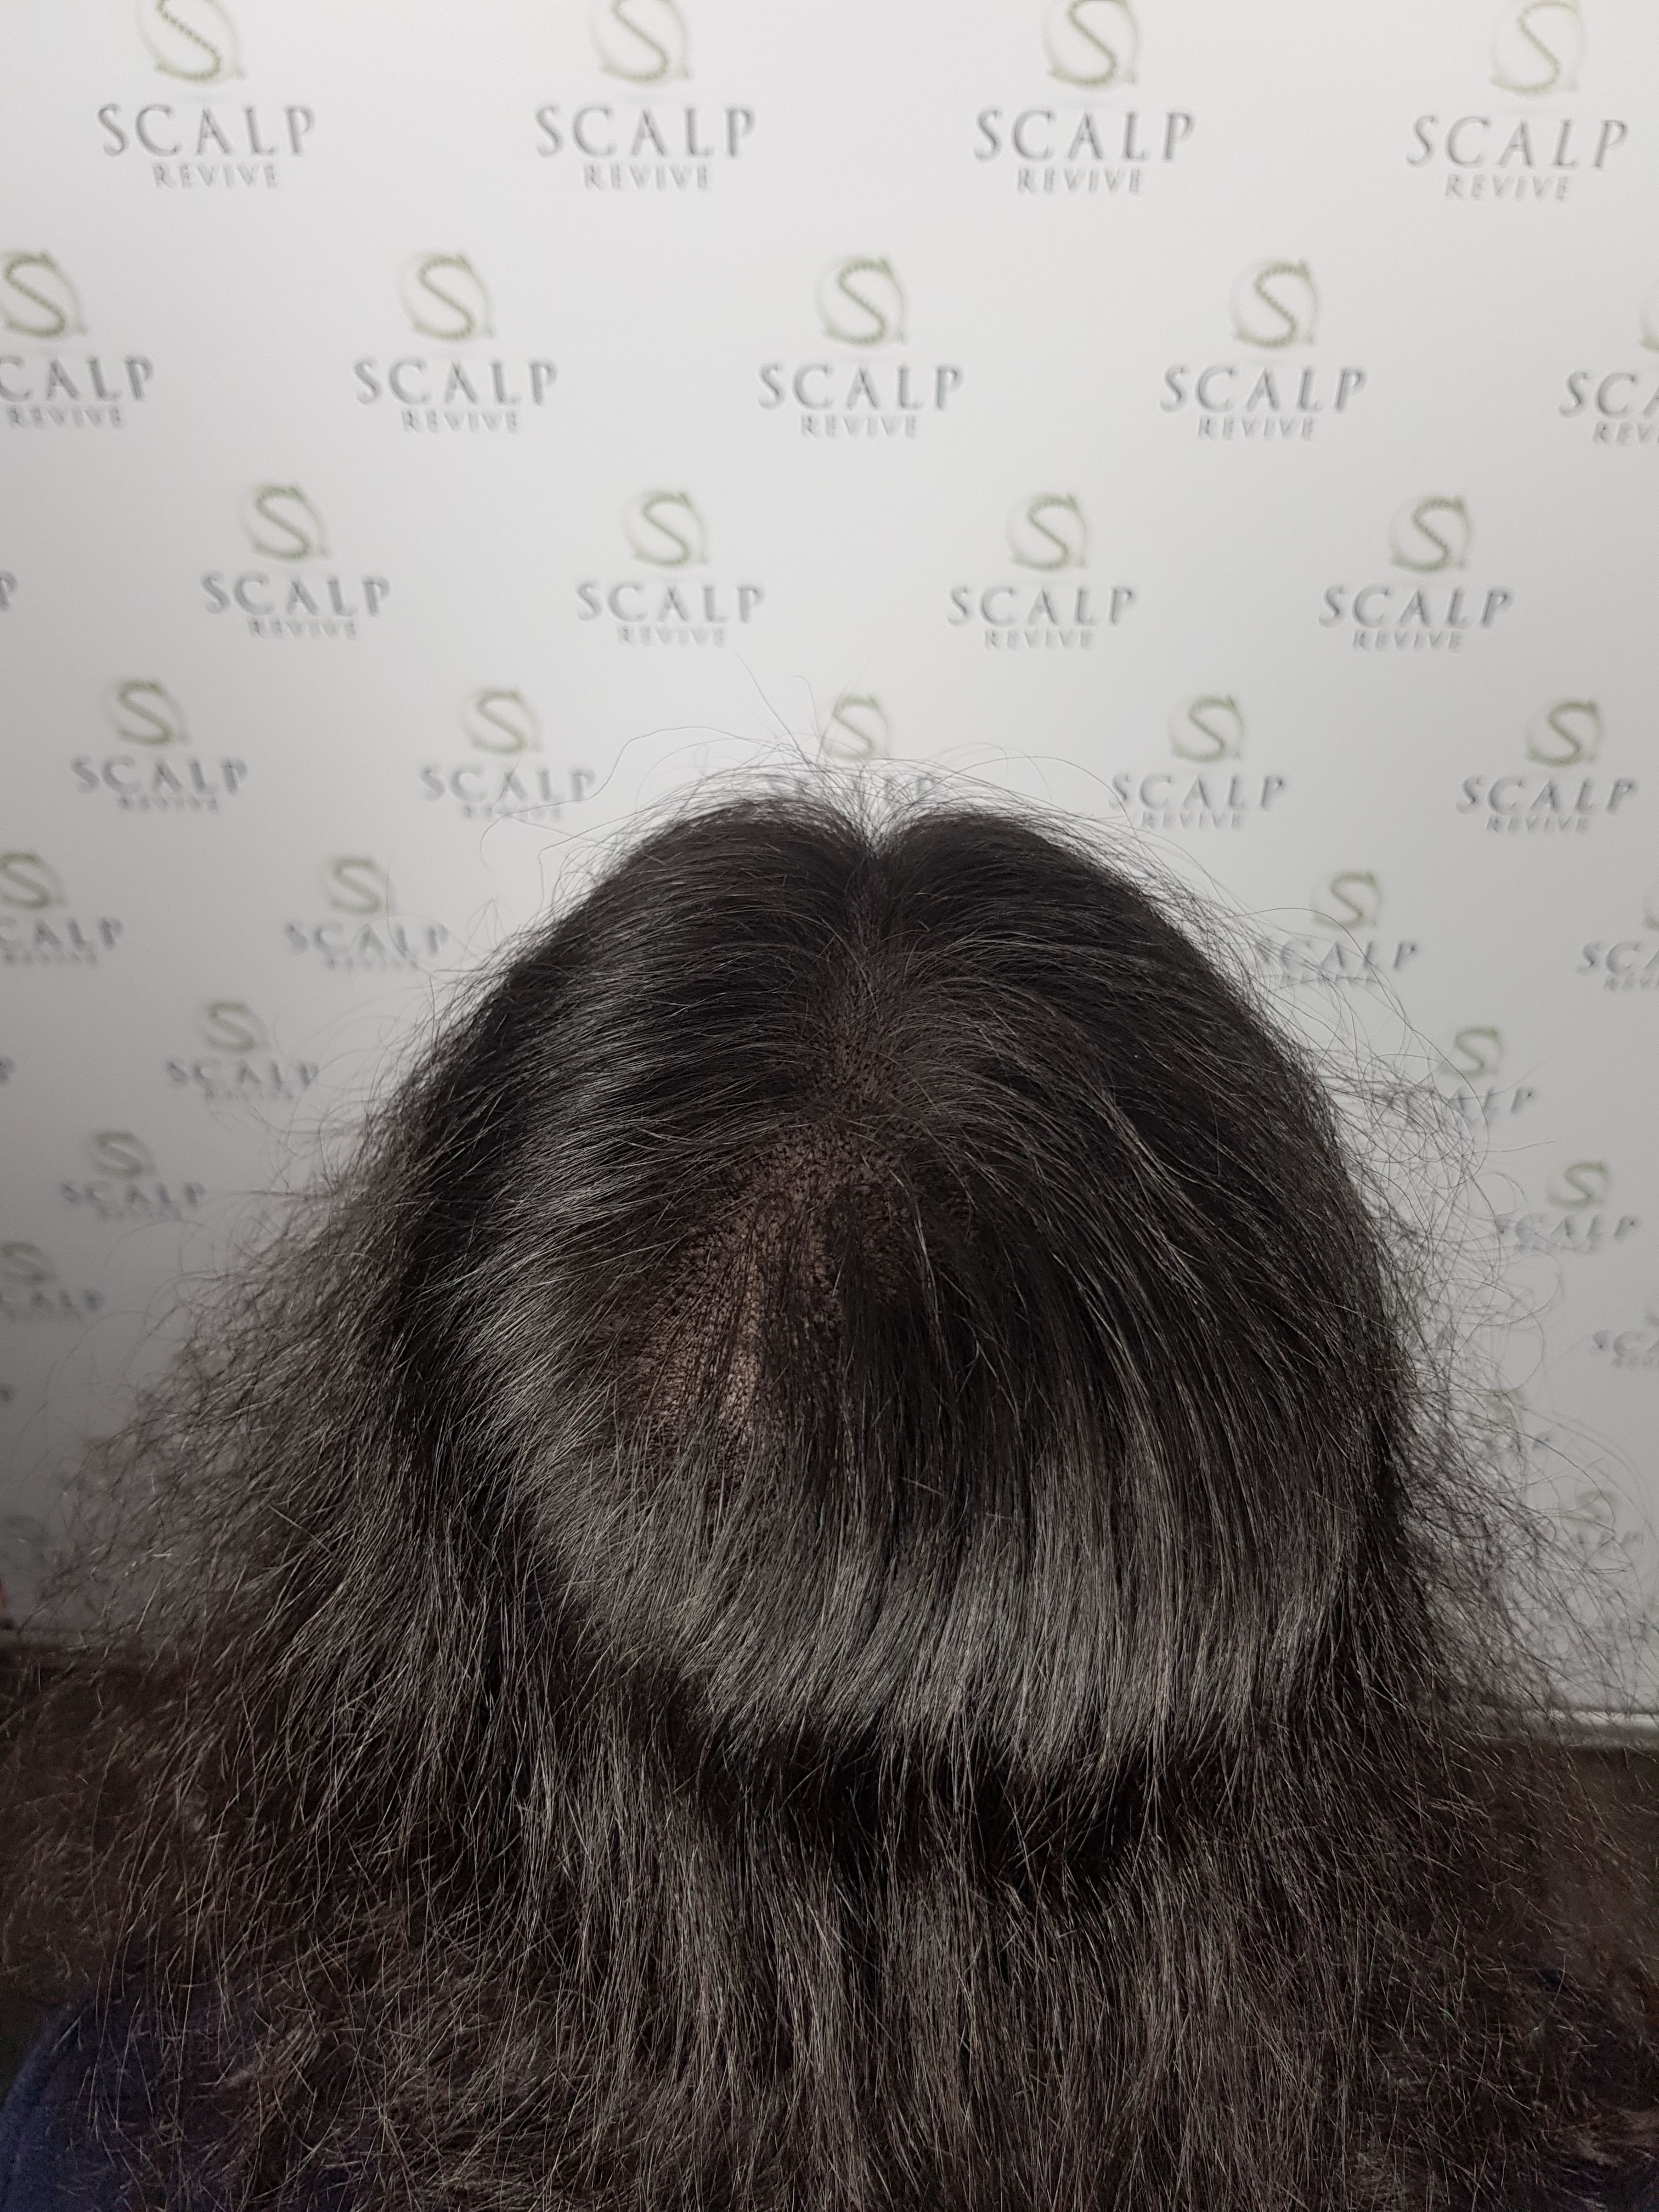 Scalp Micropigmentation for women. hair loss for women. Leeds UK